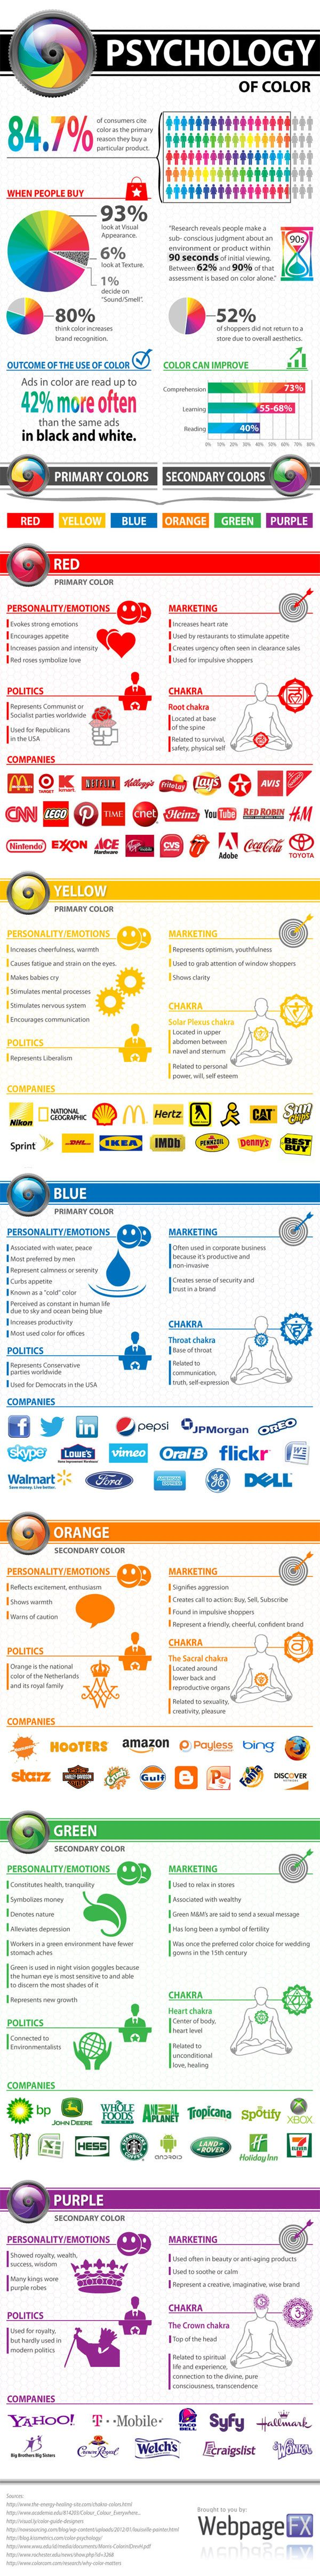 Here's an #infographic  that together on the massive impact color has on our (the consumers) lives. The infographic contain some heavy duty research on color psychology and wanted to get your feedback